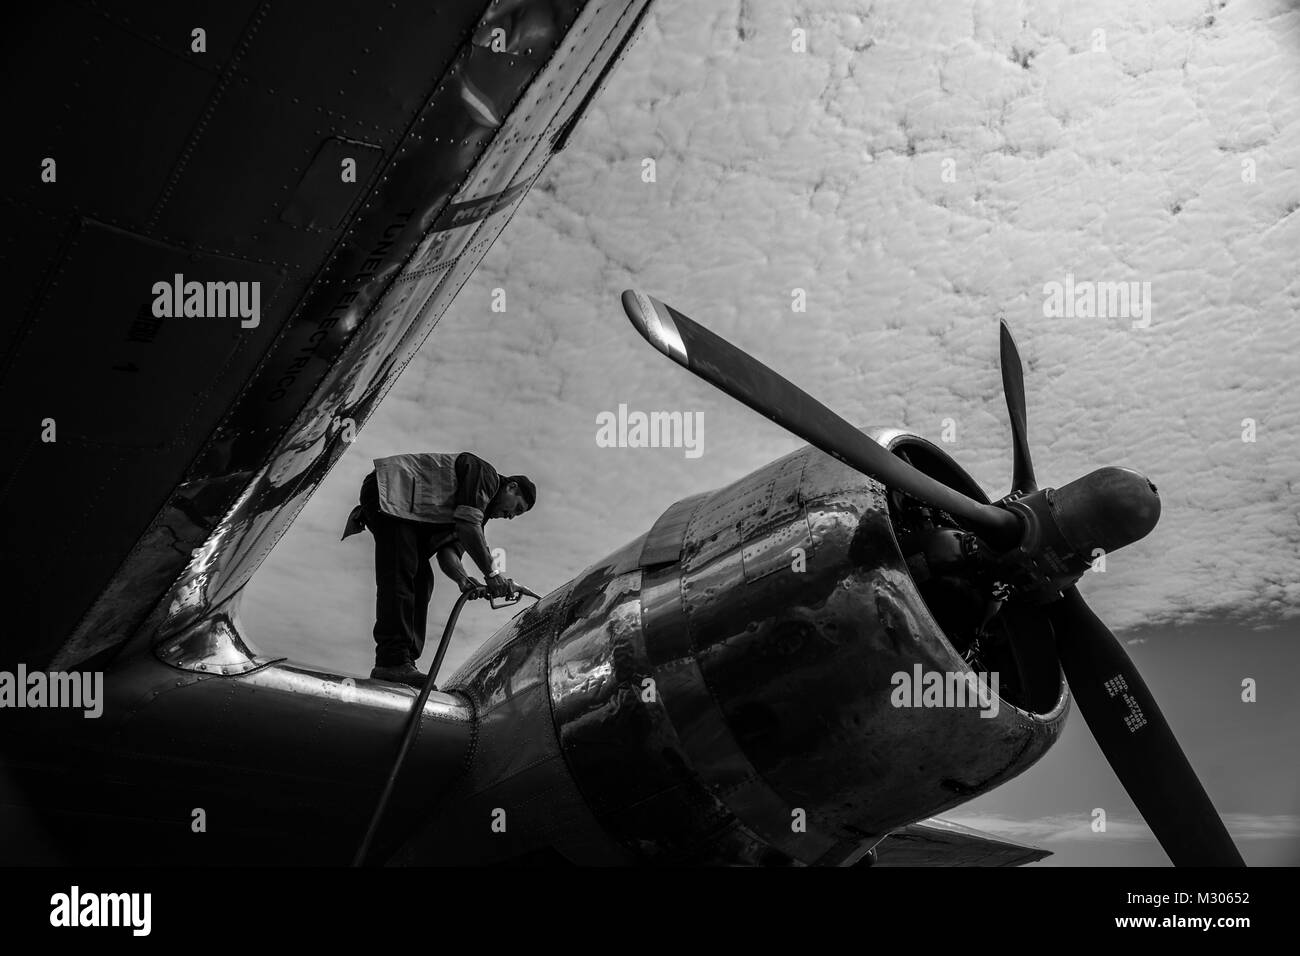 A Colombian mechanic refuels a Douglas DC-3 aircraft at the airport of Puerto Inírida, Colombia. - Stock Image